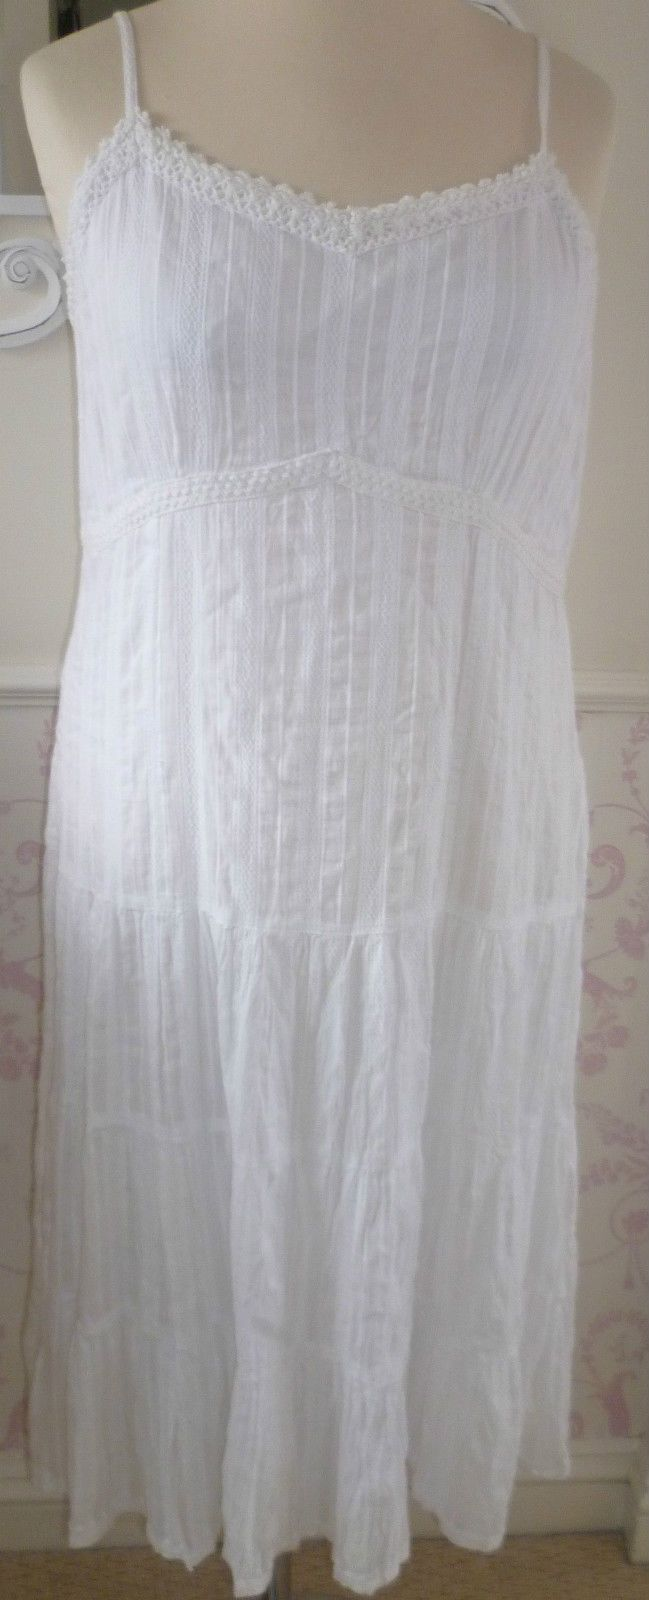 BON Marche White Strappy Tiered SUN Dress SZ 16 18 BNWT Hippy Boho Peasant Lined | eBay